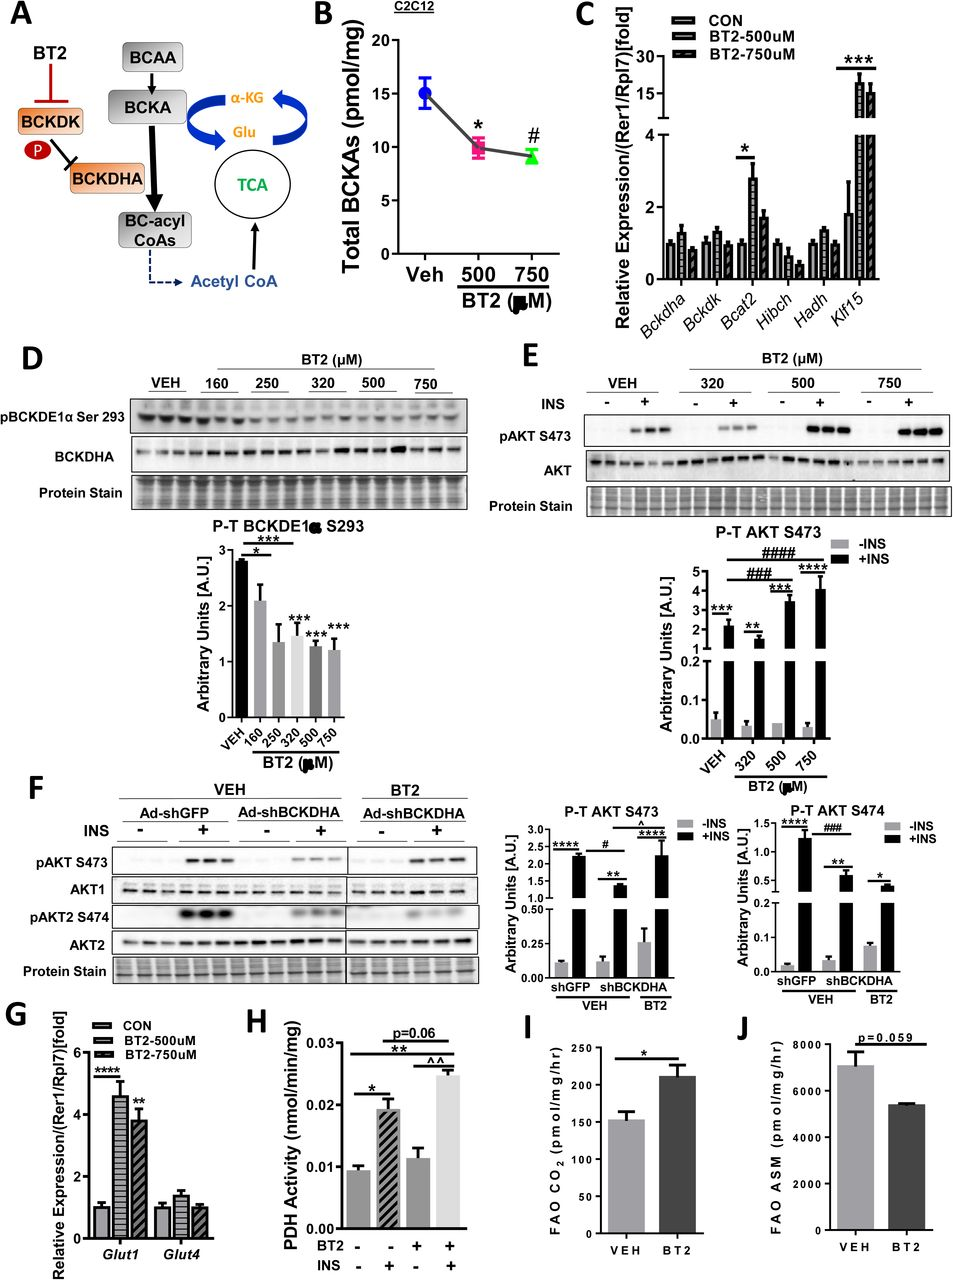 Pharmacological inhibition of BCKDK by BT2 improves muscle insulin signaling. a) A diagrammatic representation of BT2 action. b) Intracellular BCKAs by UPLC/MS-MS and c) qPCR analysis of BCAA catabolic genes Bckdha , Bckdk , Bcat2 , Hadh , Hibch and Klf15 corrected to Rer1/Rpl7 reference gene levels in C2C12 myotubes treated with 500µM and 750µM BT2 for 20 hr. d) Immunoblot analysis and densitometric quantification of phosphorylated BCKDH subunit E1 at Ser 293 in C2C12 myotubes treated with 160µM, 250µM, 320µM, 500µM and 750µM BT2 for 20 hr. e) Immunoblotting and densitometric quantification of phosphorylated AKT Ser 473 and total AKT in differentiated C2C12 cells pretreated with 320µM, 500µM and 750µM BT2 for 20 hr followed by incubation with 100nM insulin for 15 mins. (f) Immunoblot analysis and densitometric quantification of phosphorylated AKT Ser 473, Ser 474 and total AKT1 and AKT2 in C2C12 myoblasts transduced with Ad-CMV-shGFP or Ad-CMV-shGFP-r/mBCKDHA (MOI 200) for 48 hr followed by incubation with 500µM BT2 for 20 hr and stimulation with 100nM insulin for 15 mins. Statistical analysis was performed using a two-way ANOVA followed by a Tukey's multiple comparison test; *p